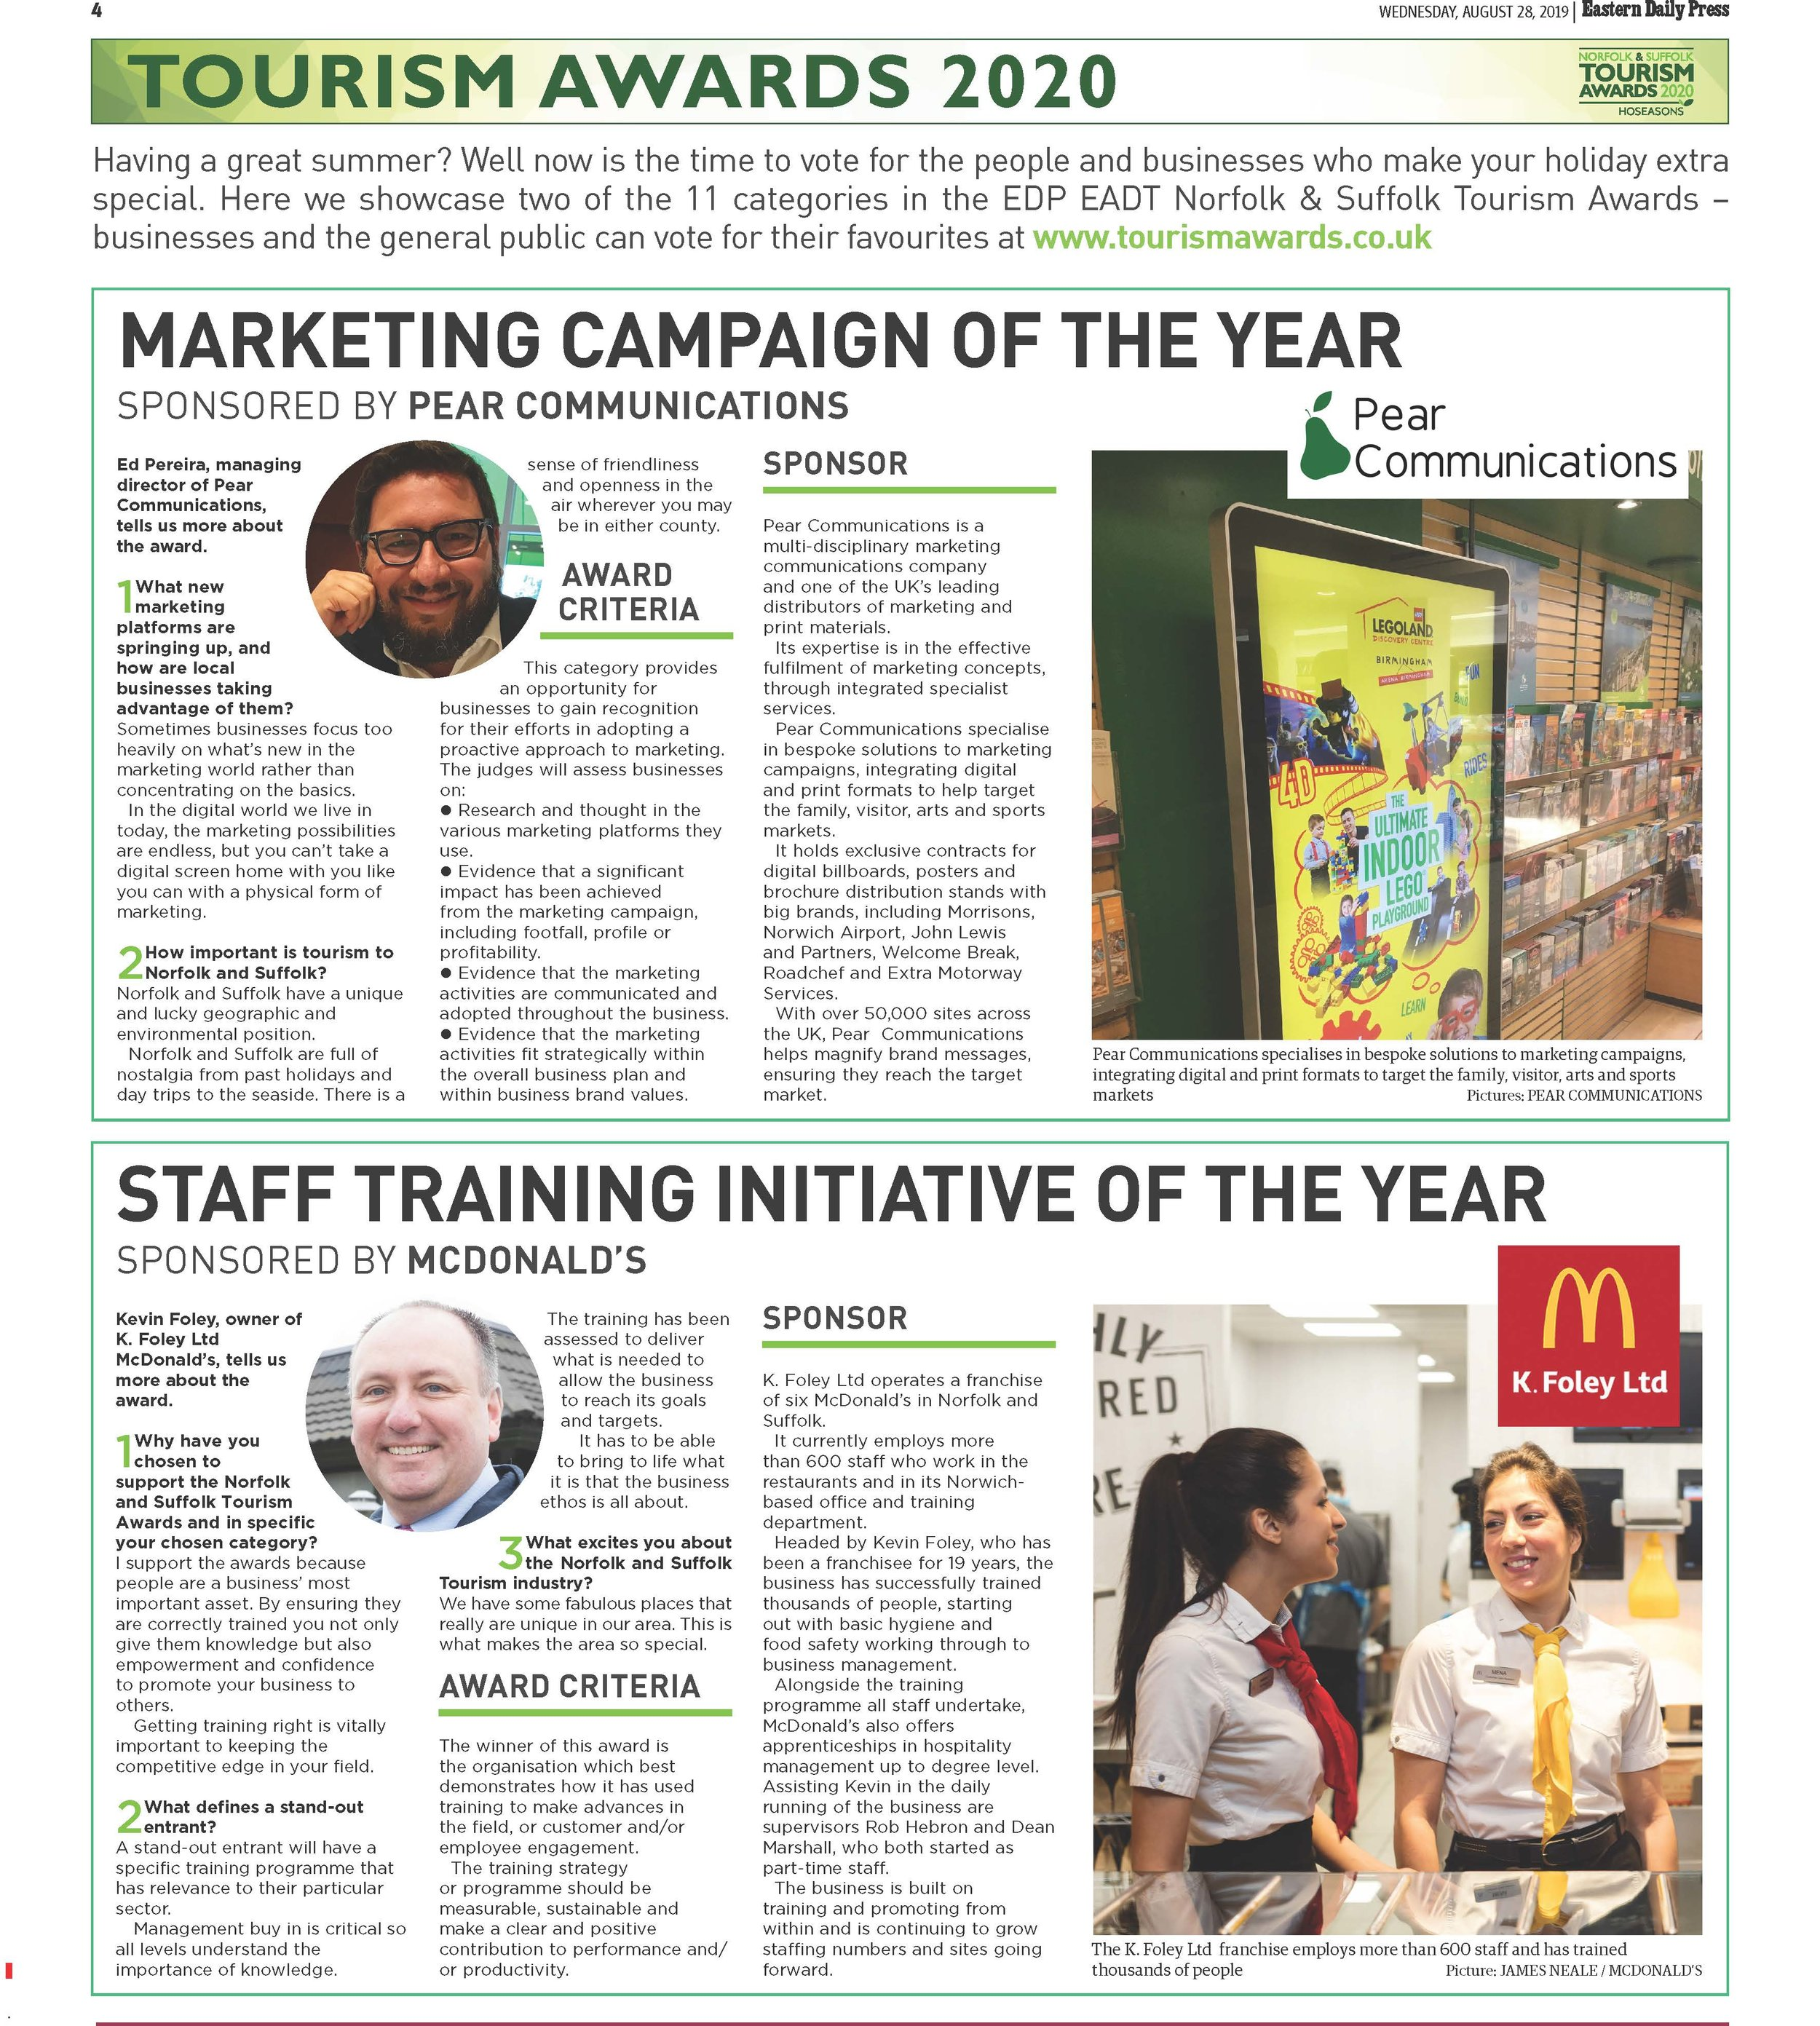 28.08 - Marketing Campaign and Staff Training Initiative of the Year.jpg